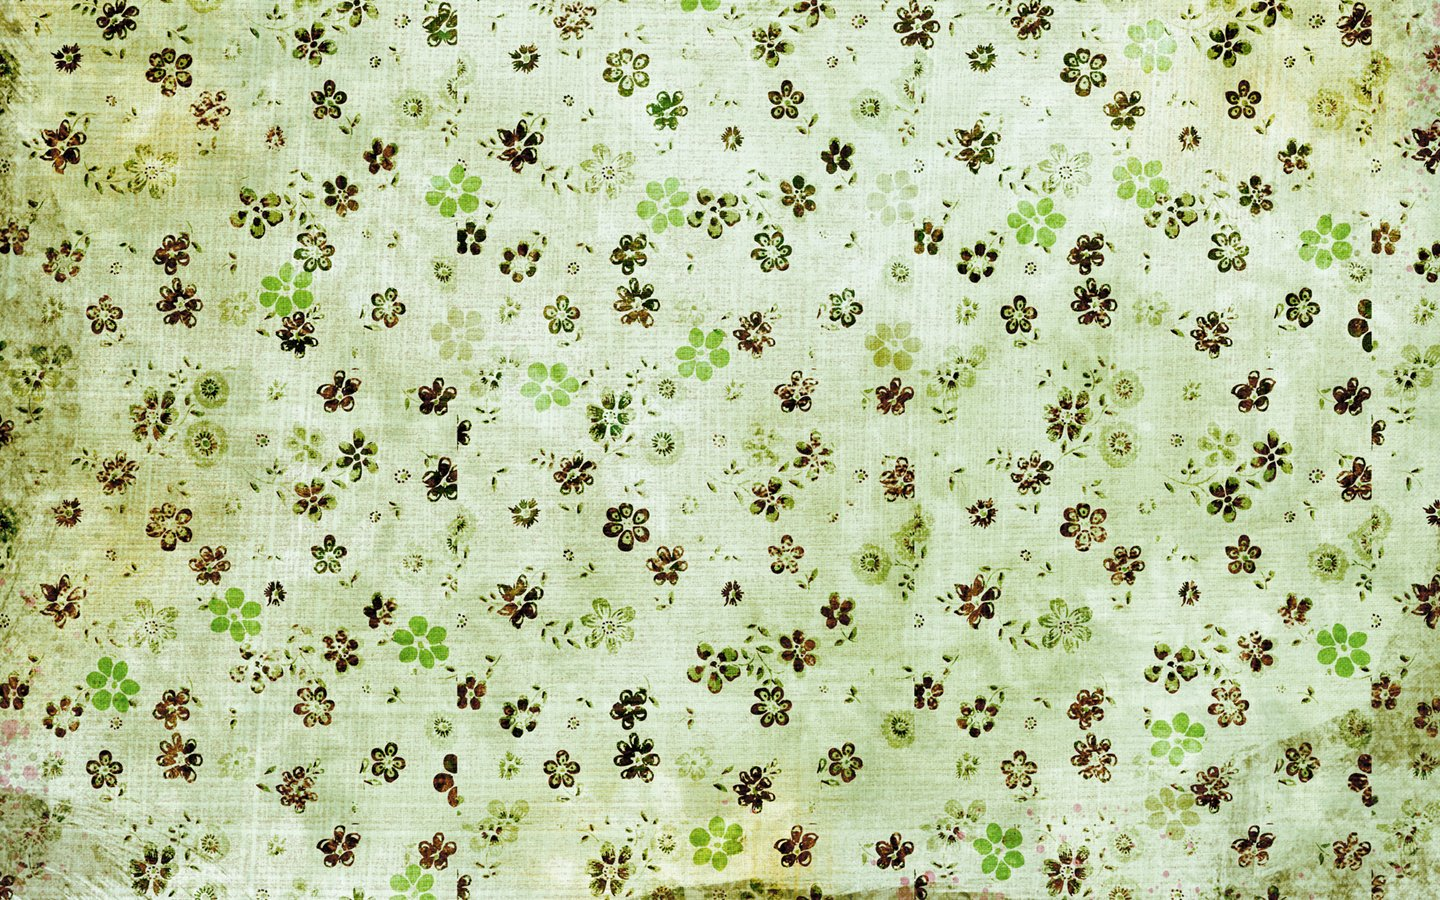 Wall Paper Patterns background wallpaper pattern pattern 554 - background patterns